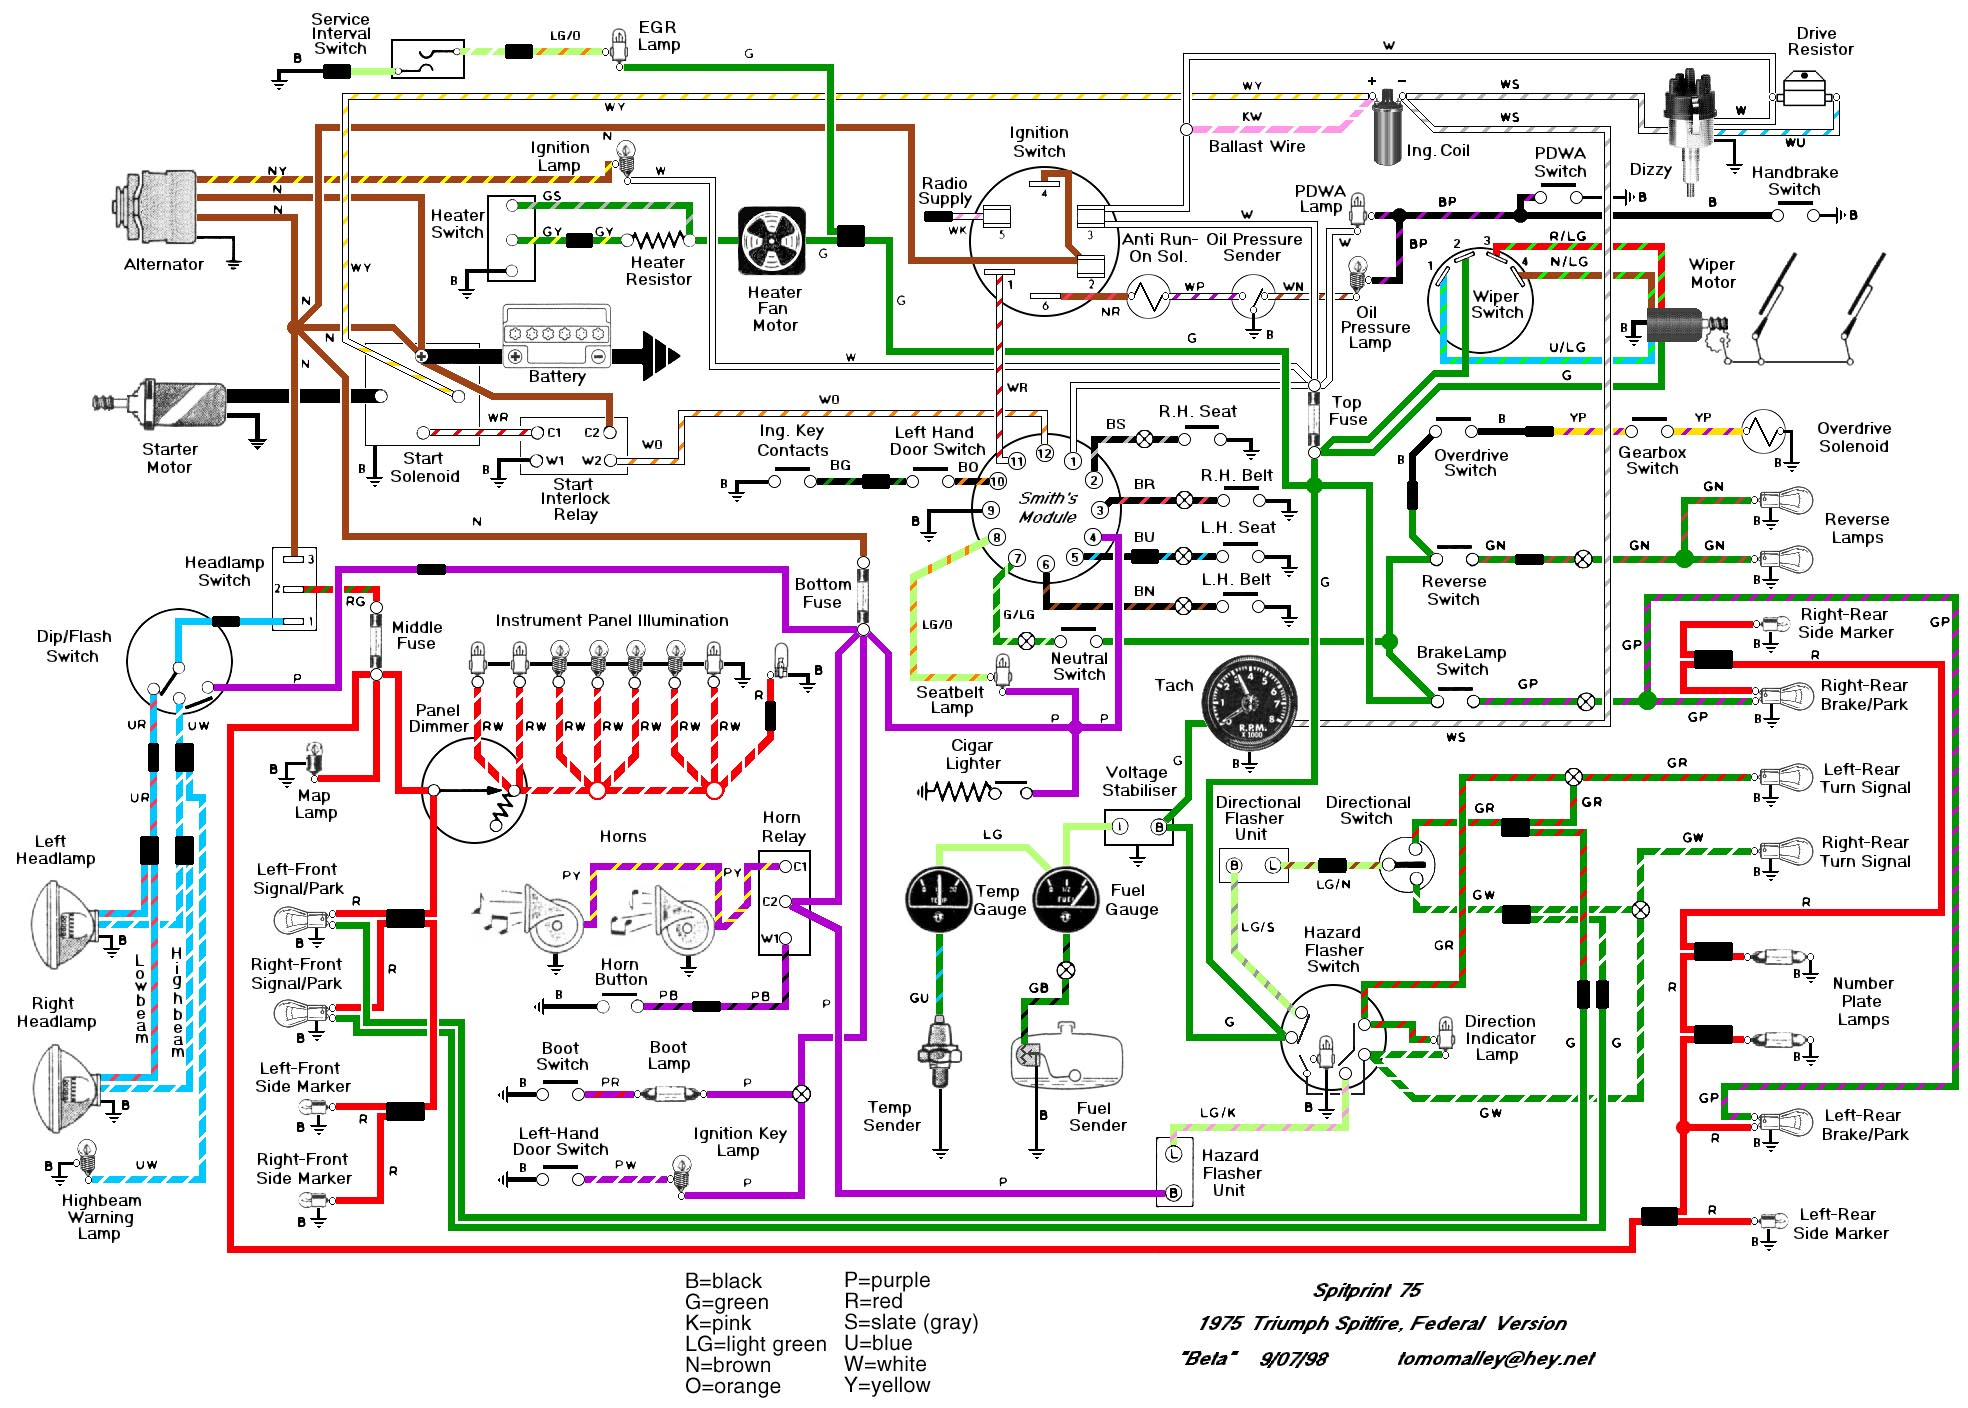 75diagram wiring schematics and diagrams triumph spitfire, gt6, herald Wiring Harness Diagram at edmiracle.co